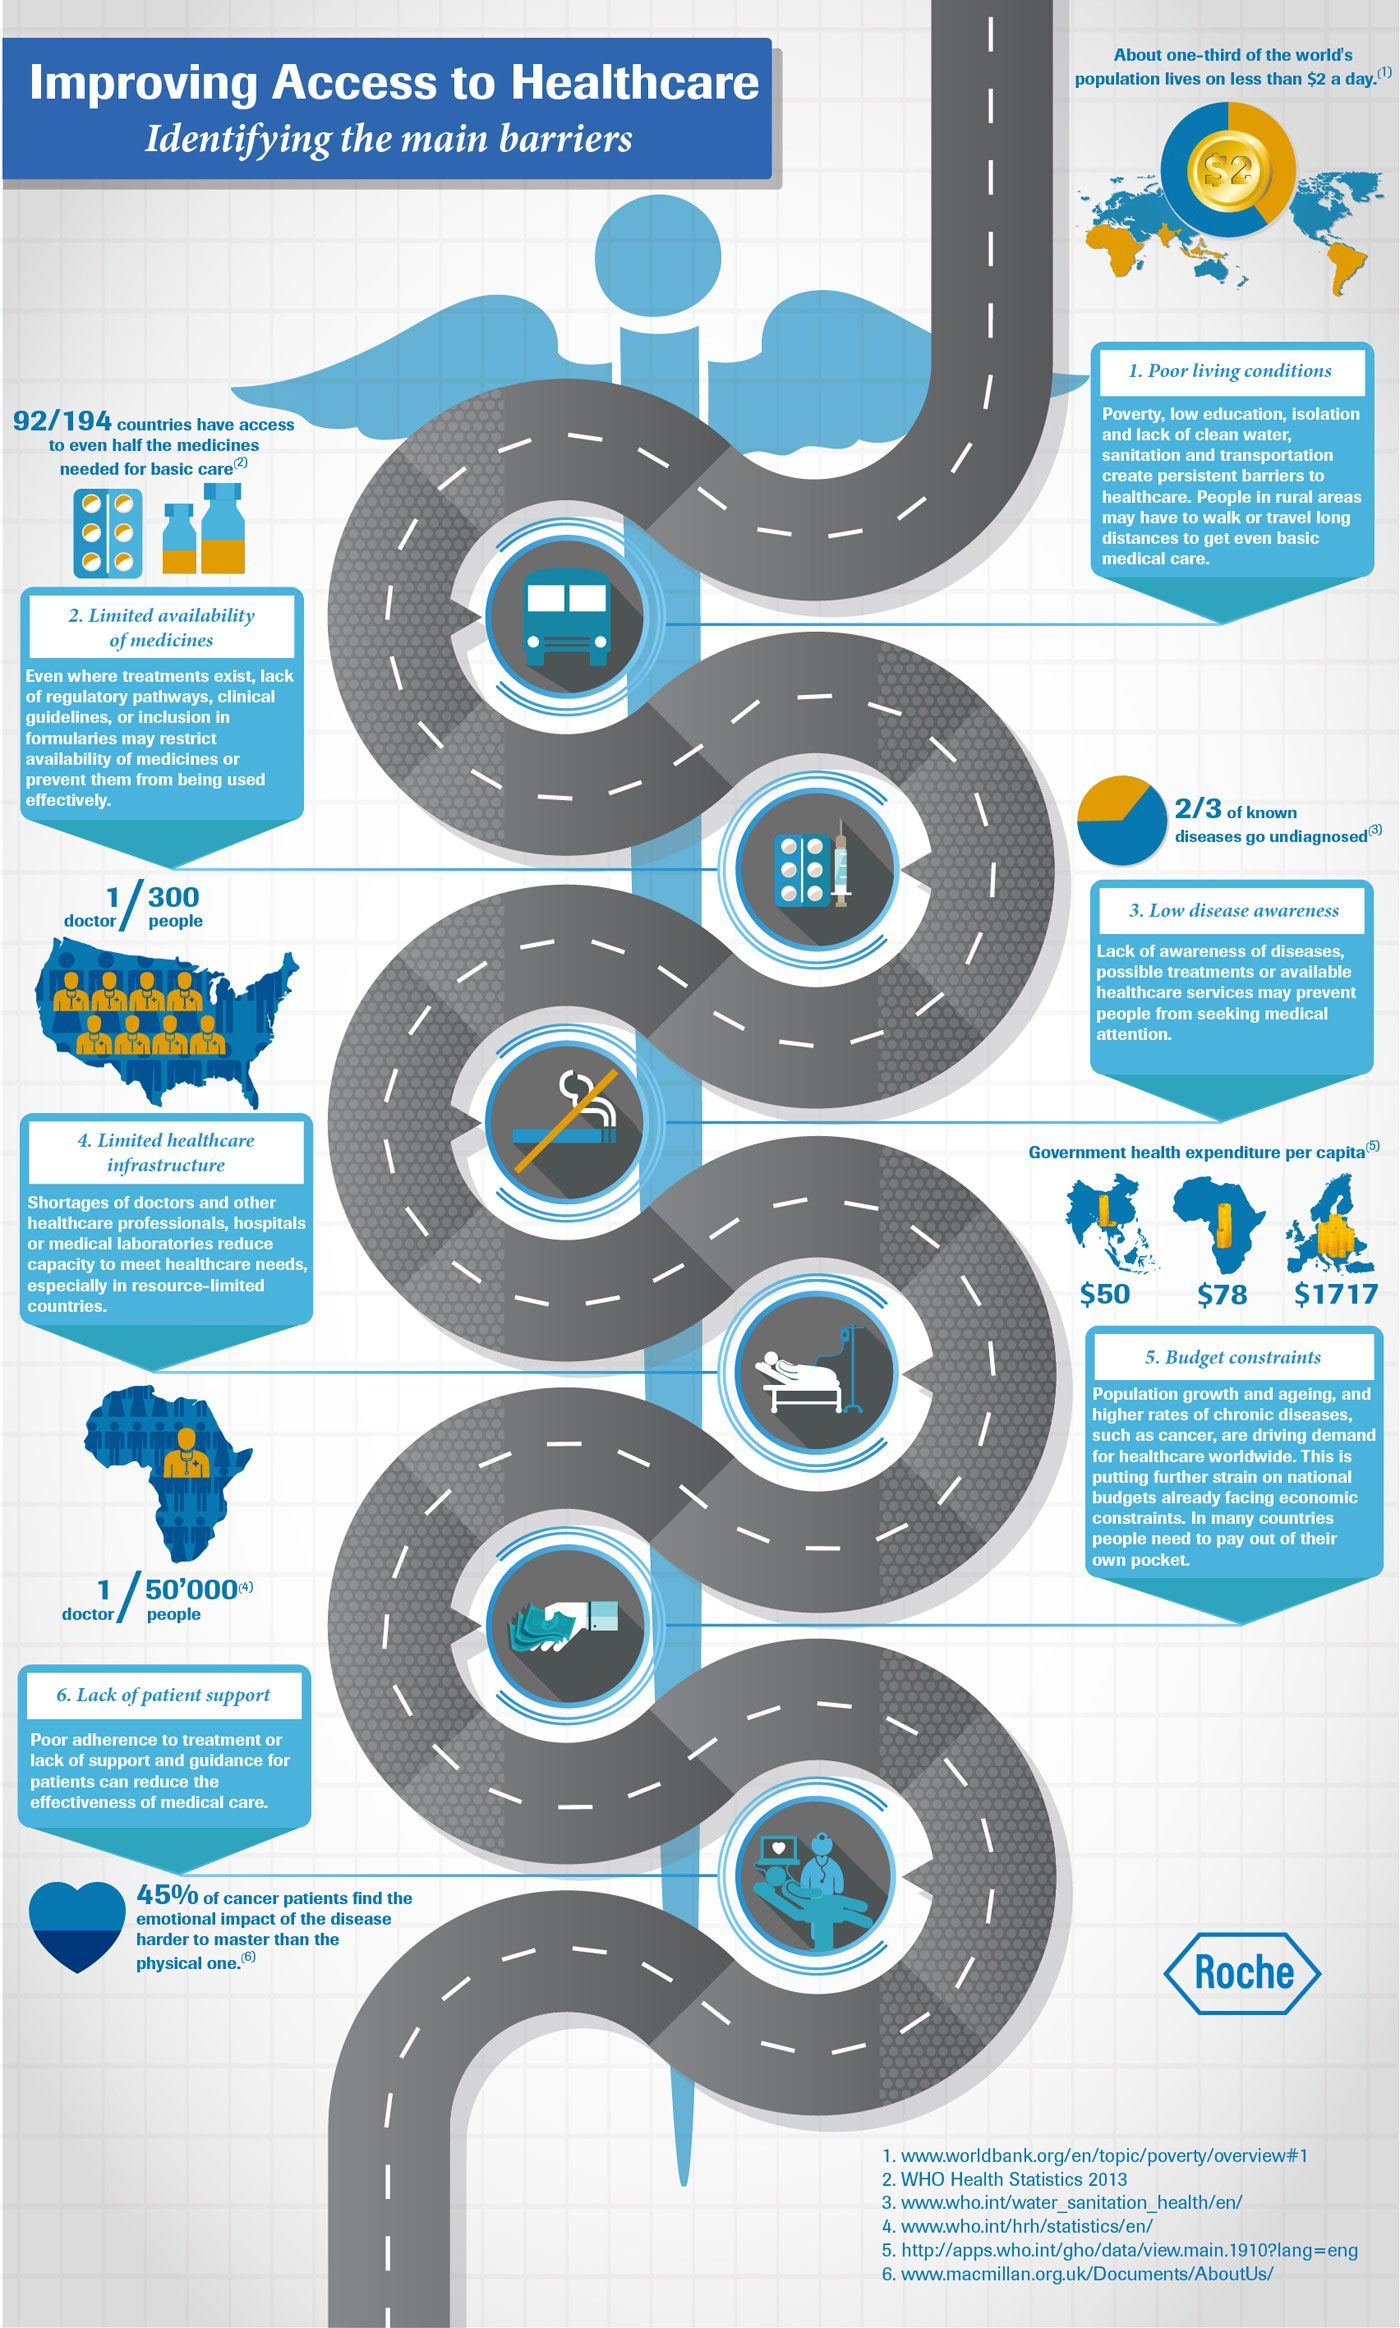 Pin by Briana Metzger on Healthcare Infographics  Pinterest